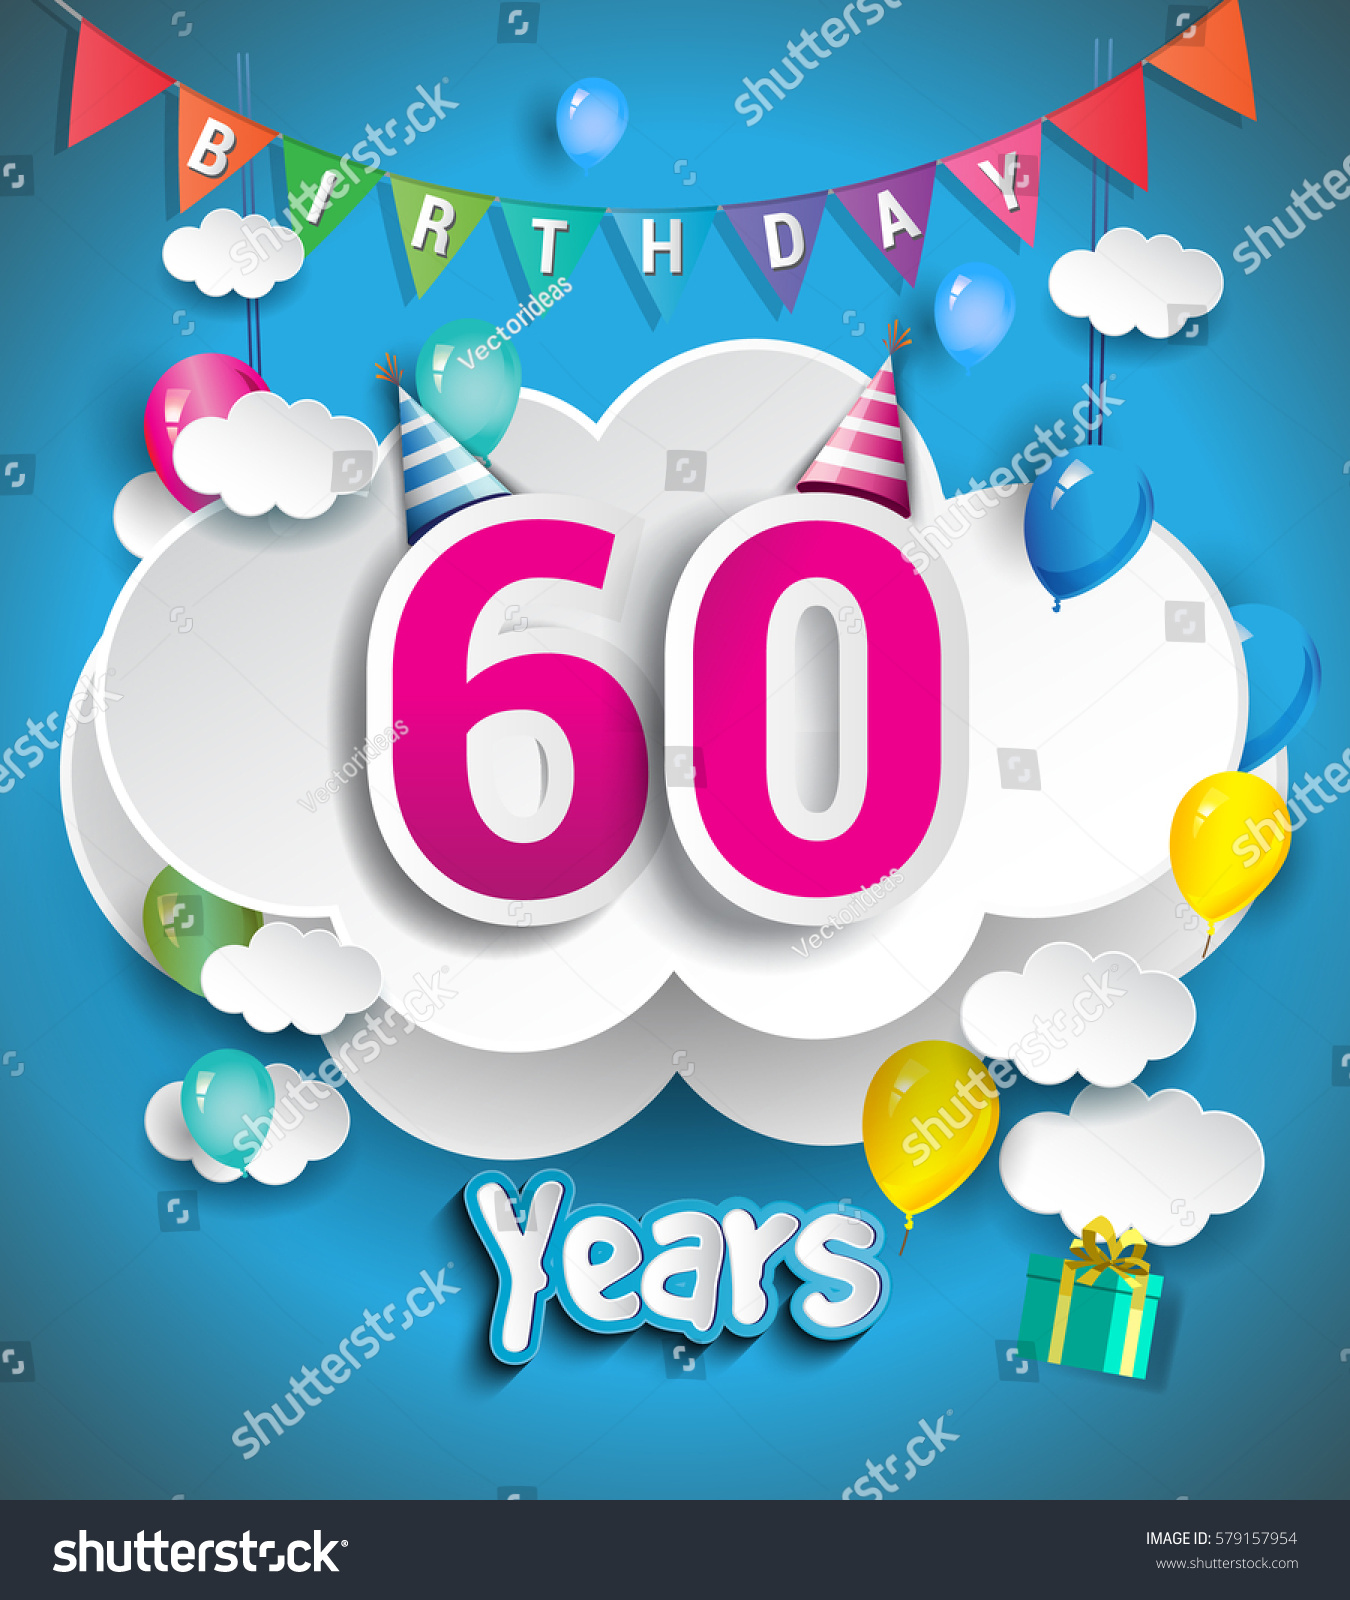 60th anniversary celebration design with clouds and balloons confetti vector template elements for